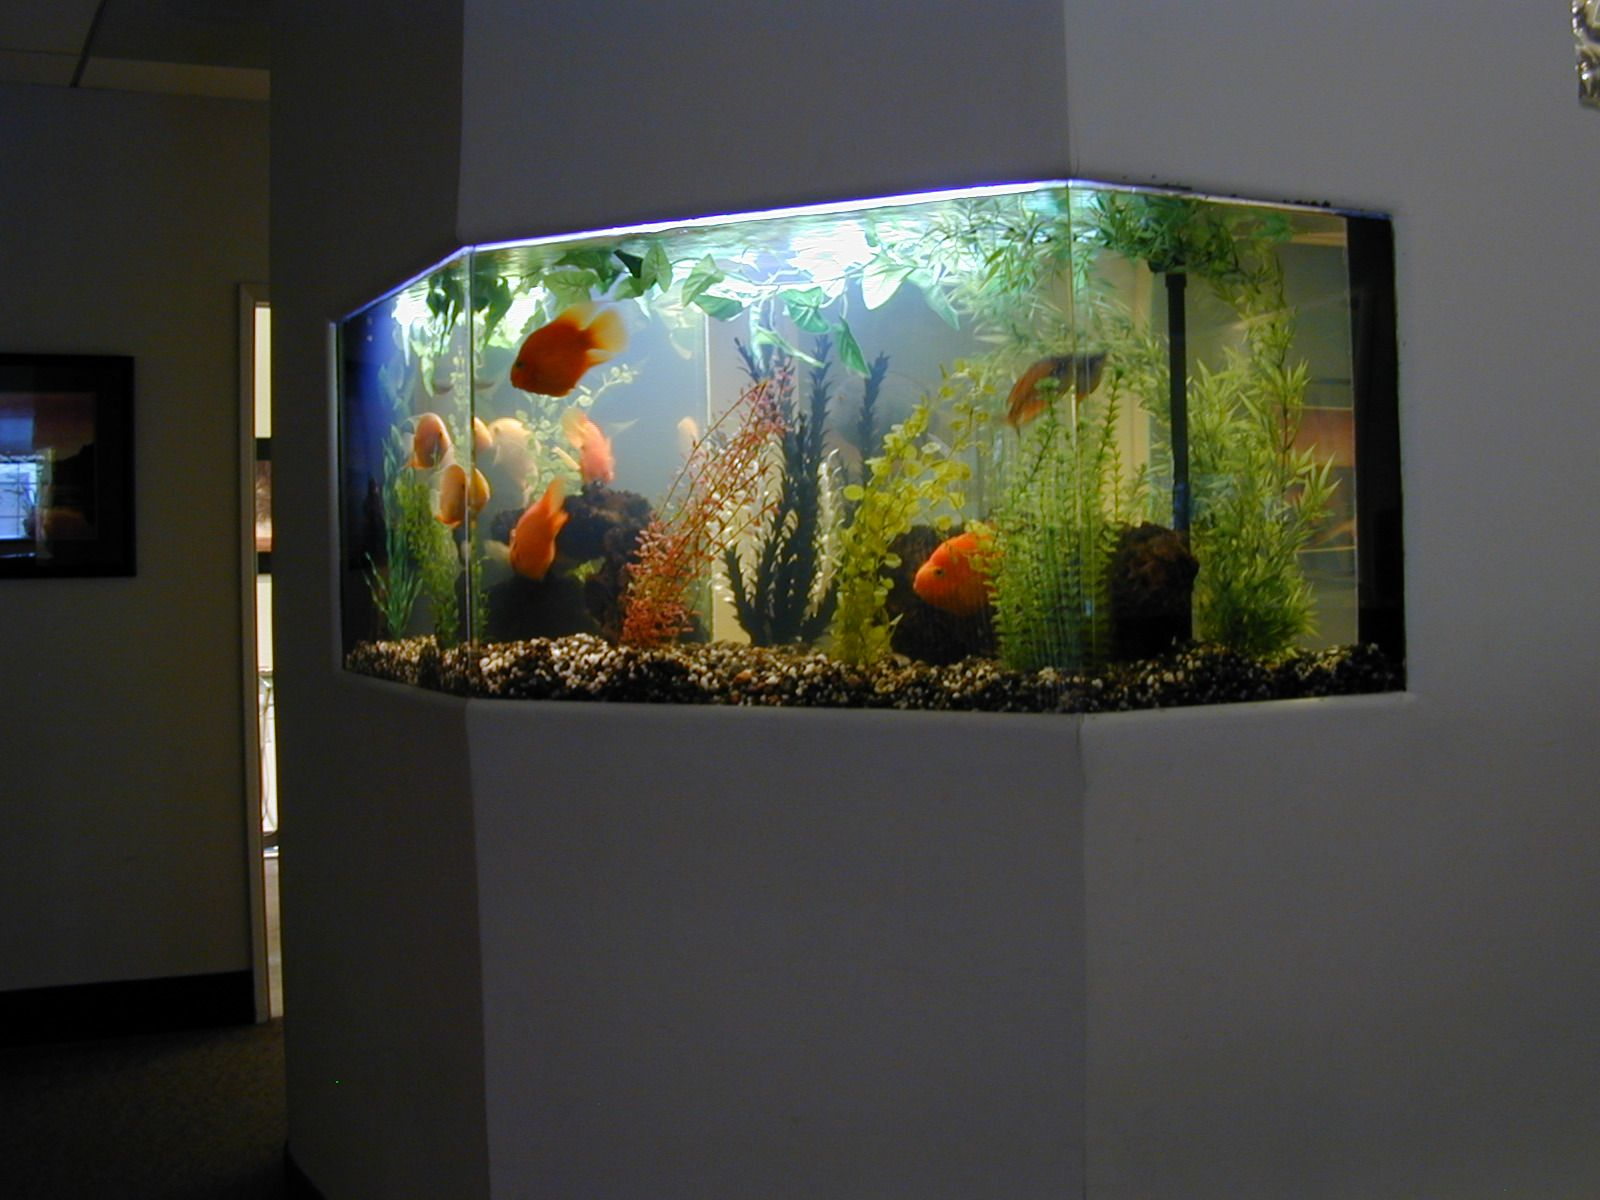 Cool Aquariums For Sale Transform The Way Your Home Looks Using A Fish Tank Fish Tanks